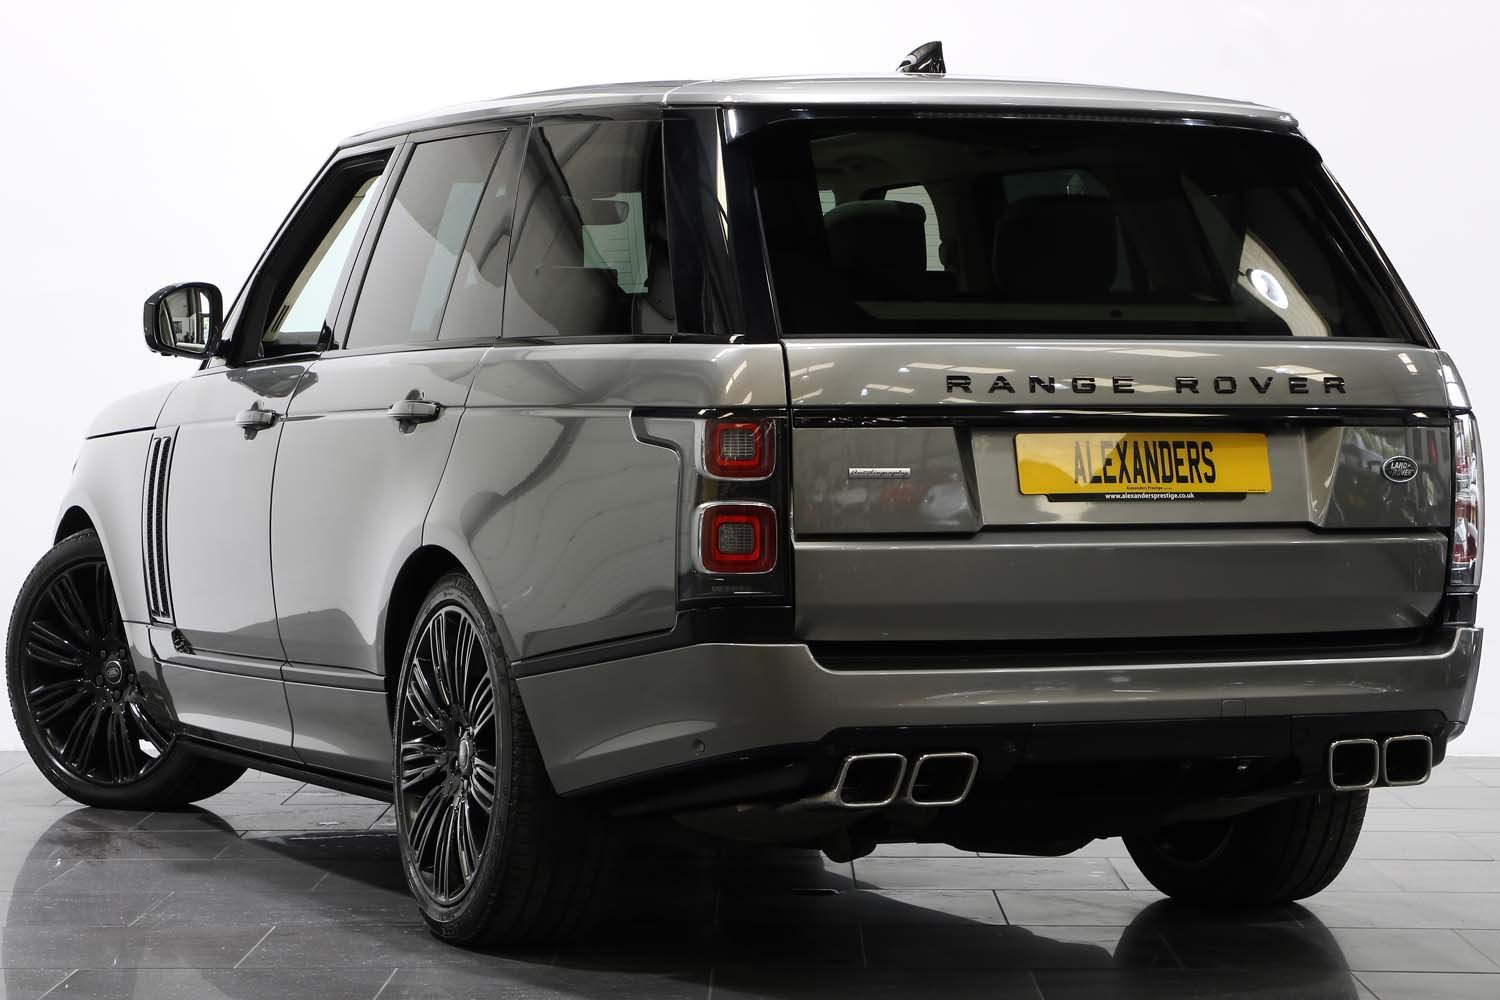 2018 68 RANGE ROVER 4.4 SDV8 AUTOBIOGRAPHY AUTO  For Sale (picture 3 of 6)